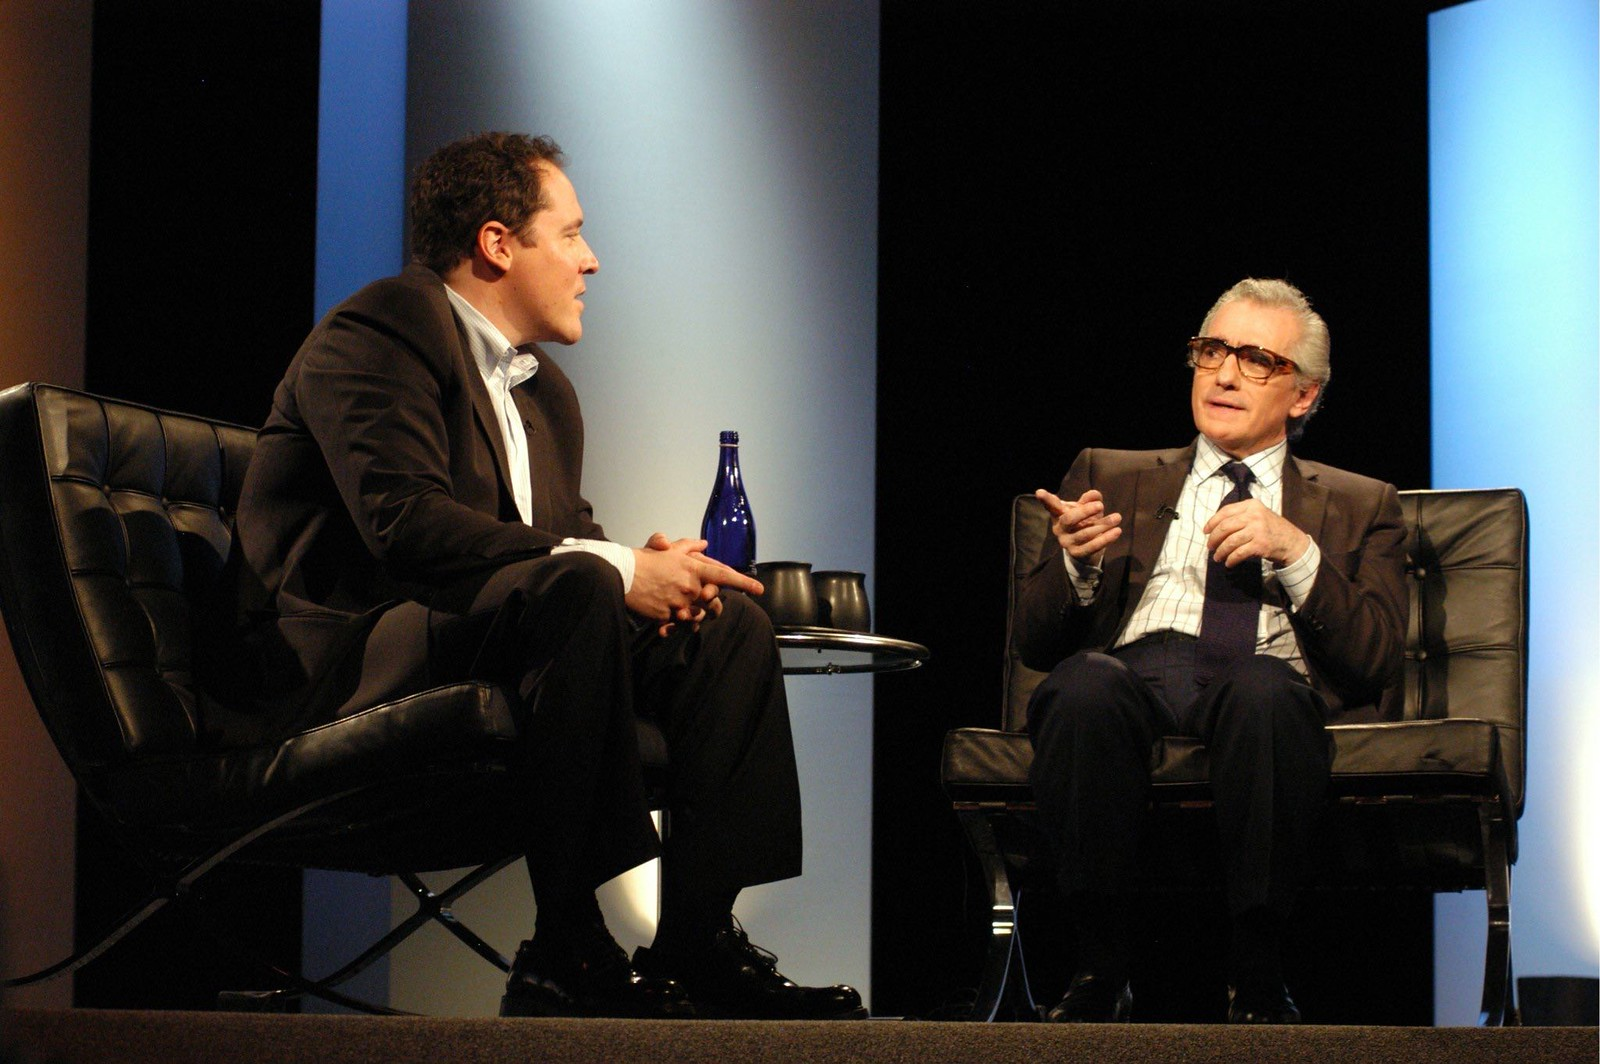 Martin Scorsese and John Favaroe 2004.jpg